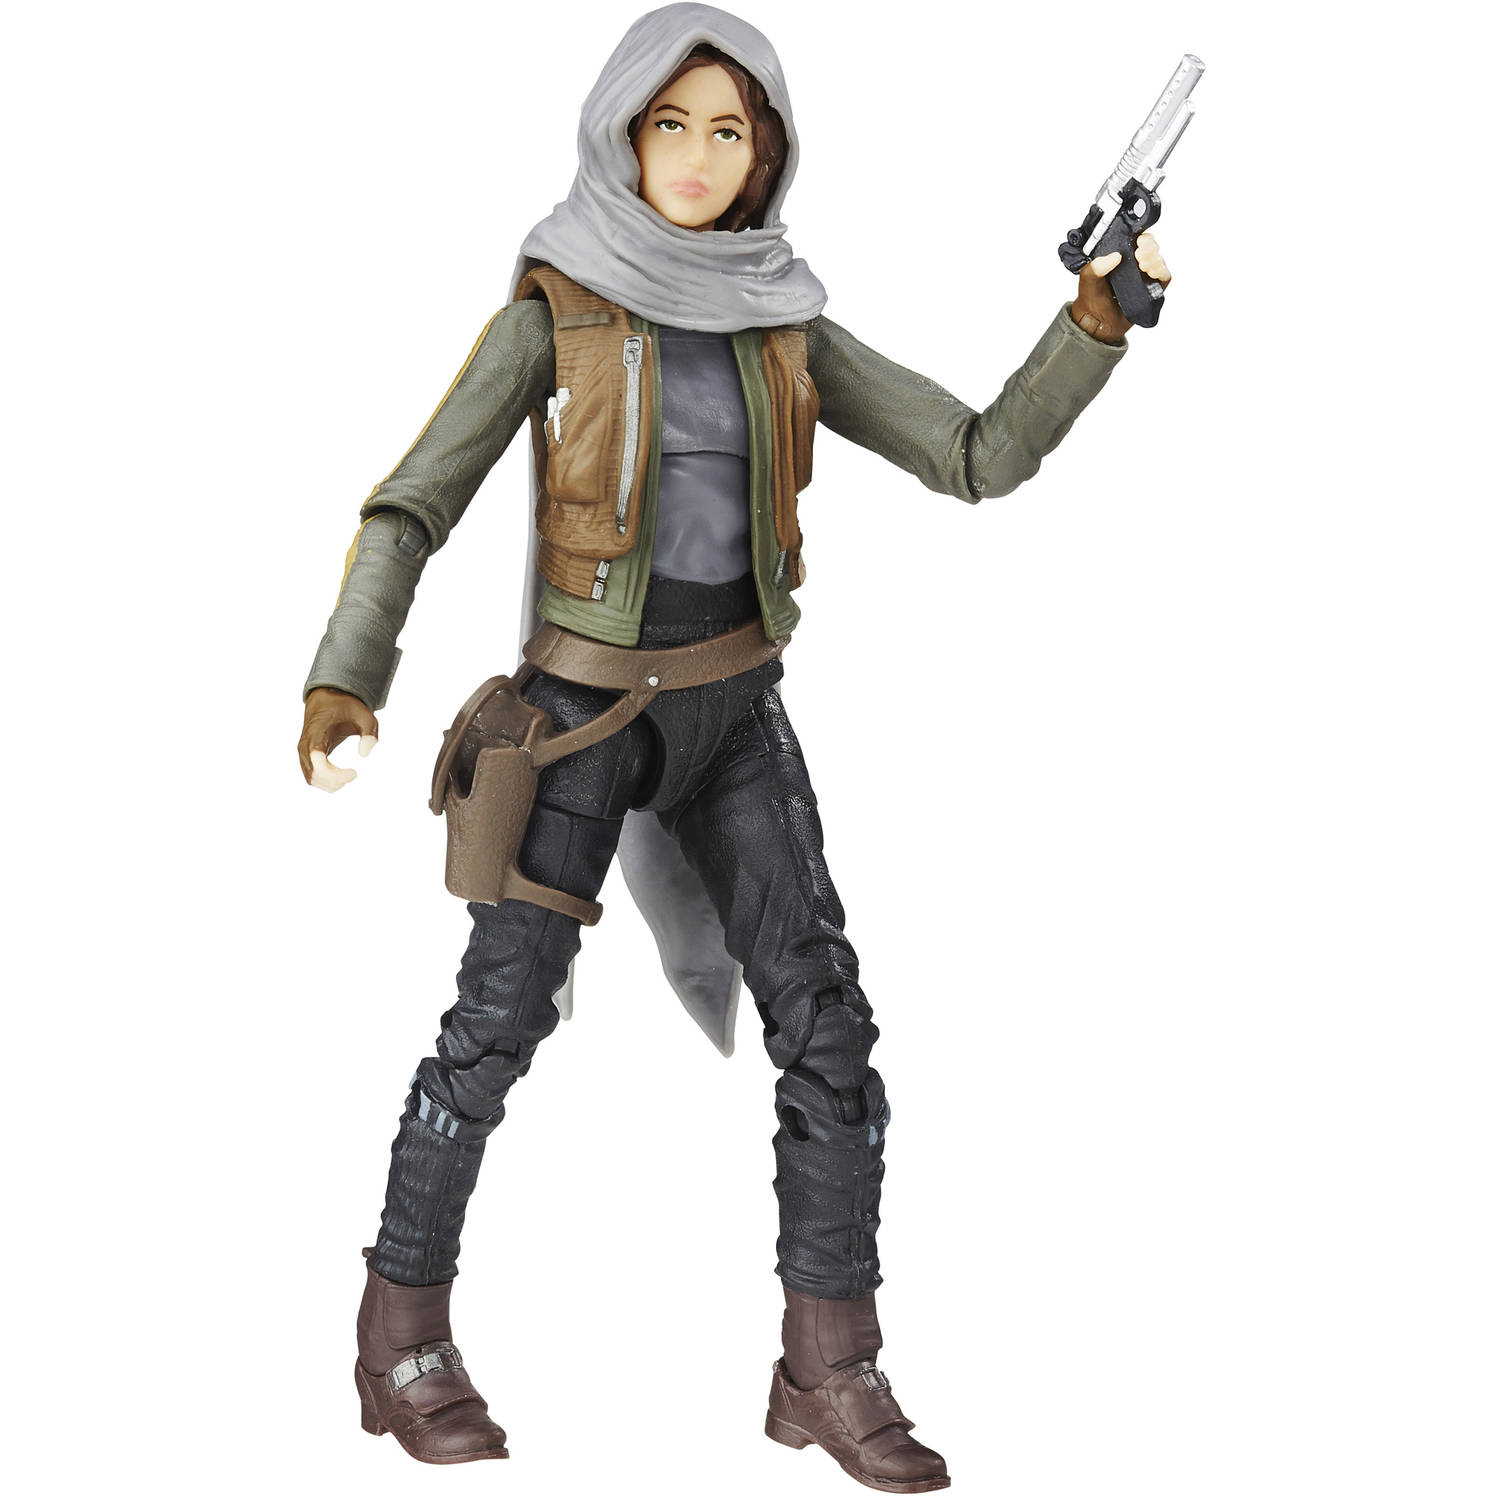 Star Wars The Black Series Rogue One Sergeant Jyn Erso